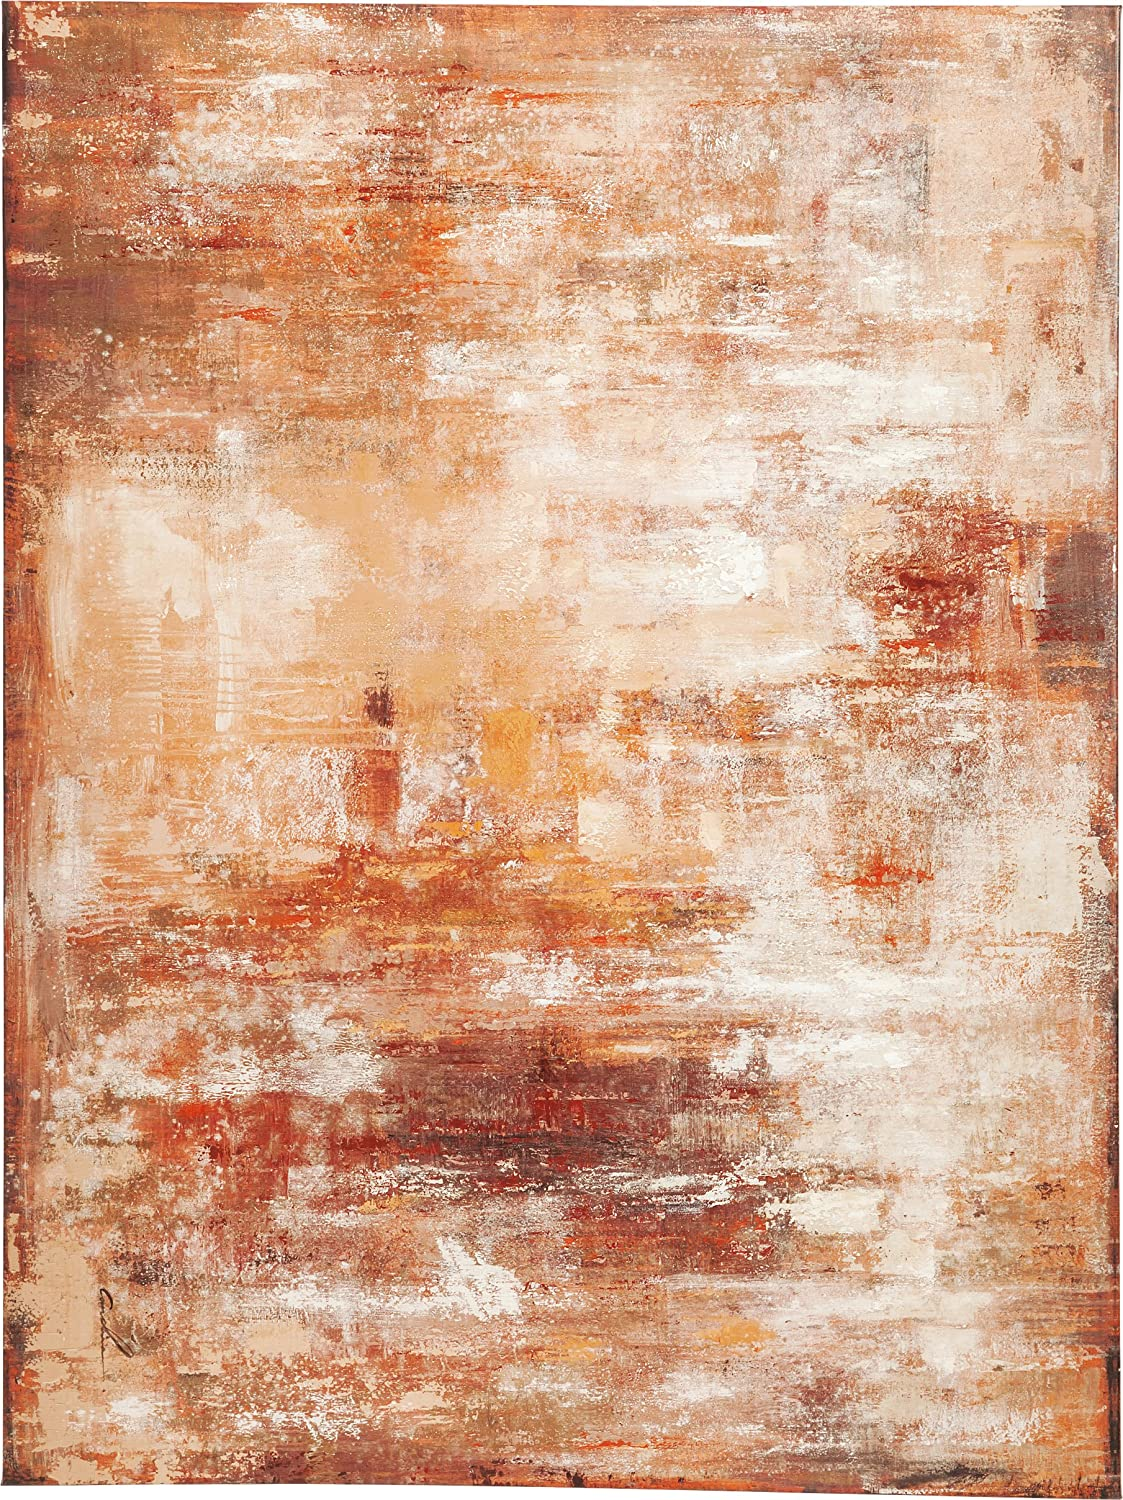 Kare Bild Touched Abstract 90 x 120cm, Holz, Rot, 3.5 x 120 x 90 cm